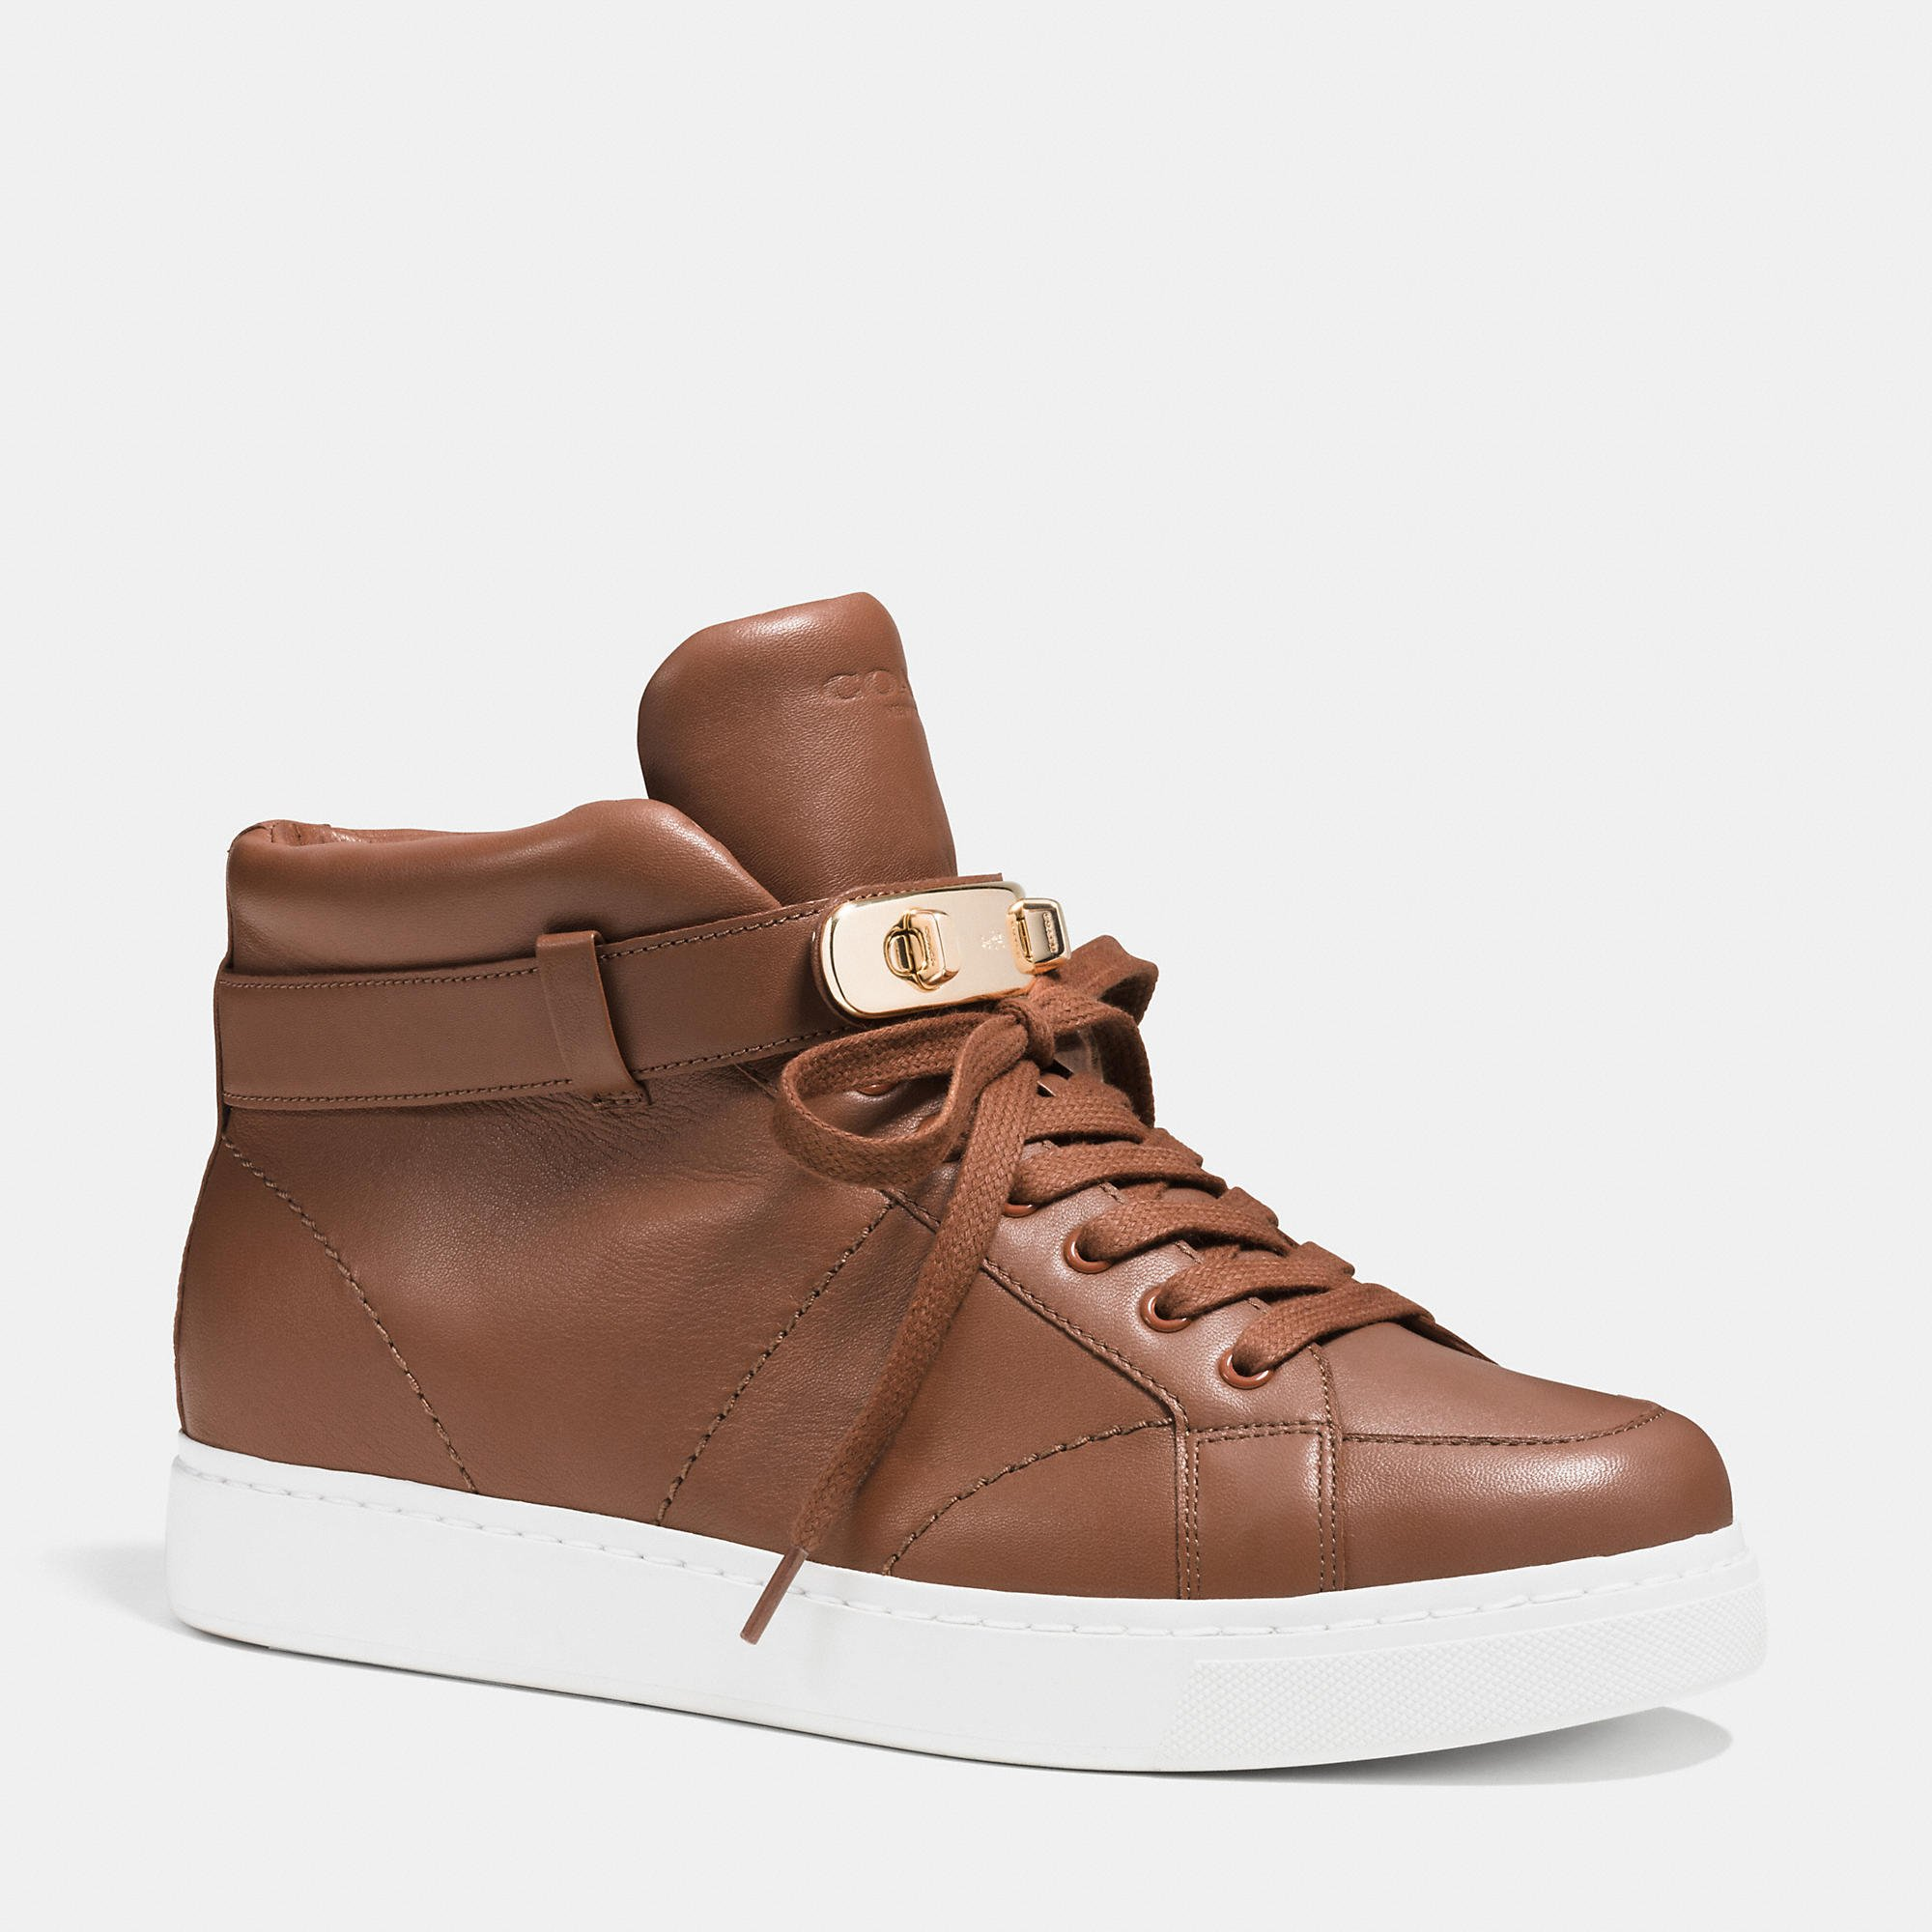 Lyst - Coach Richmond Swagger Sneaker in Brown